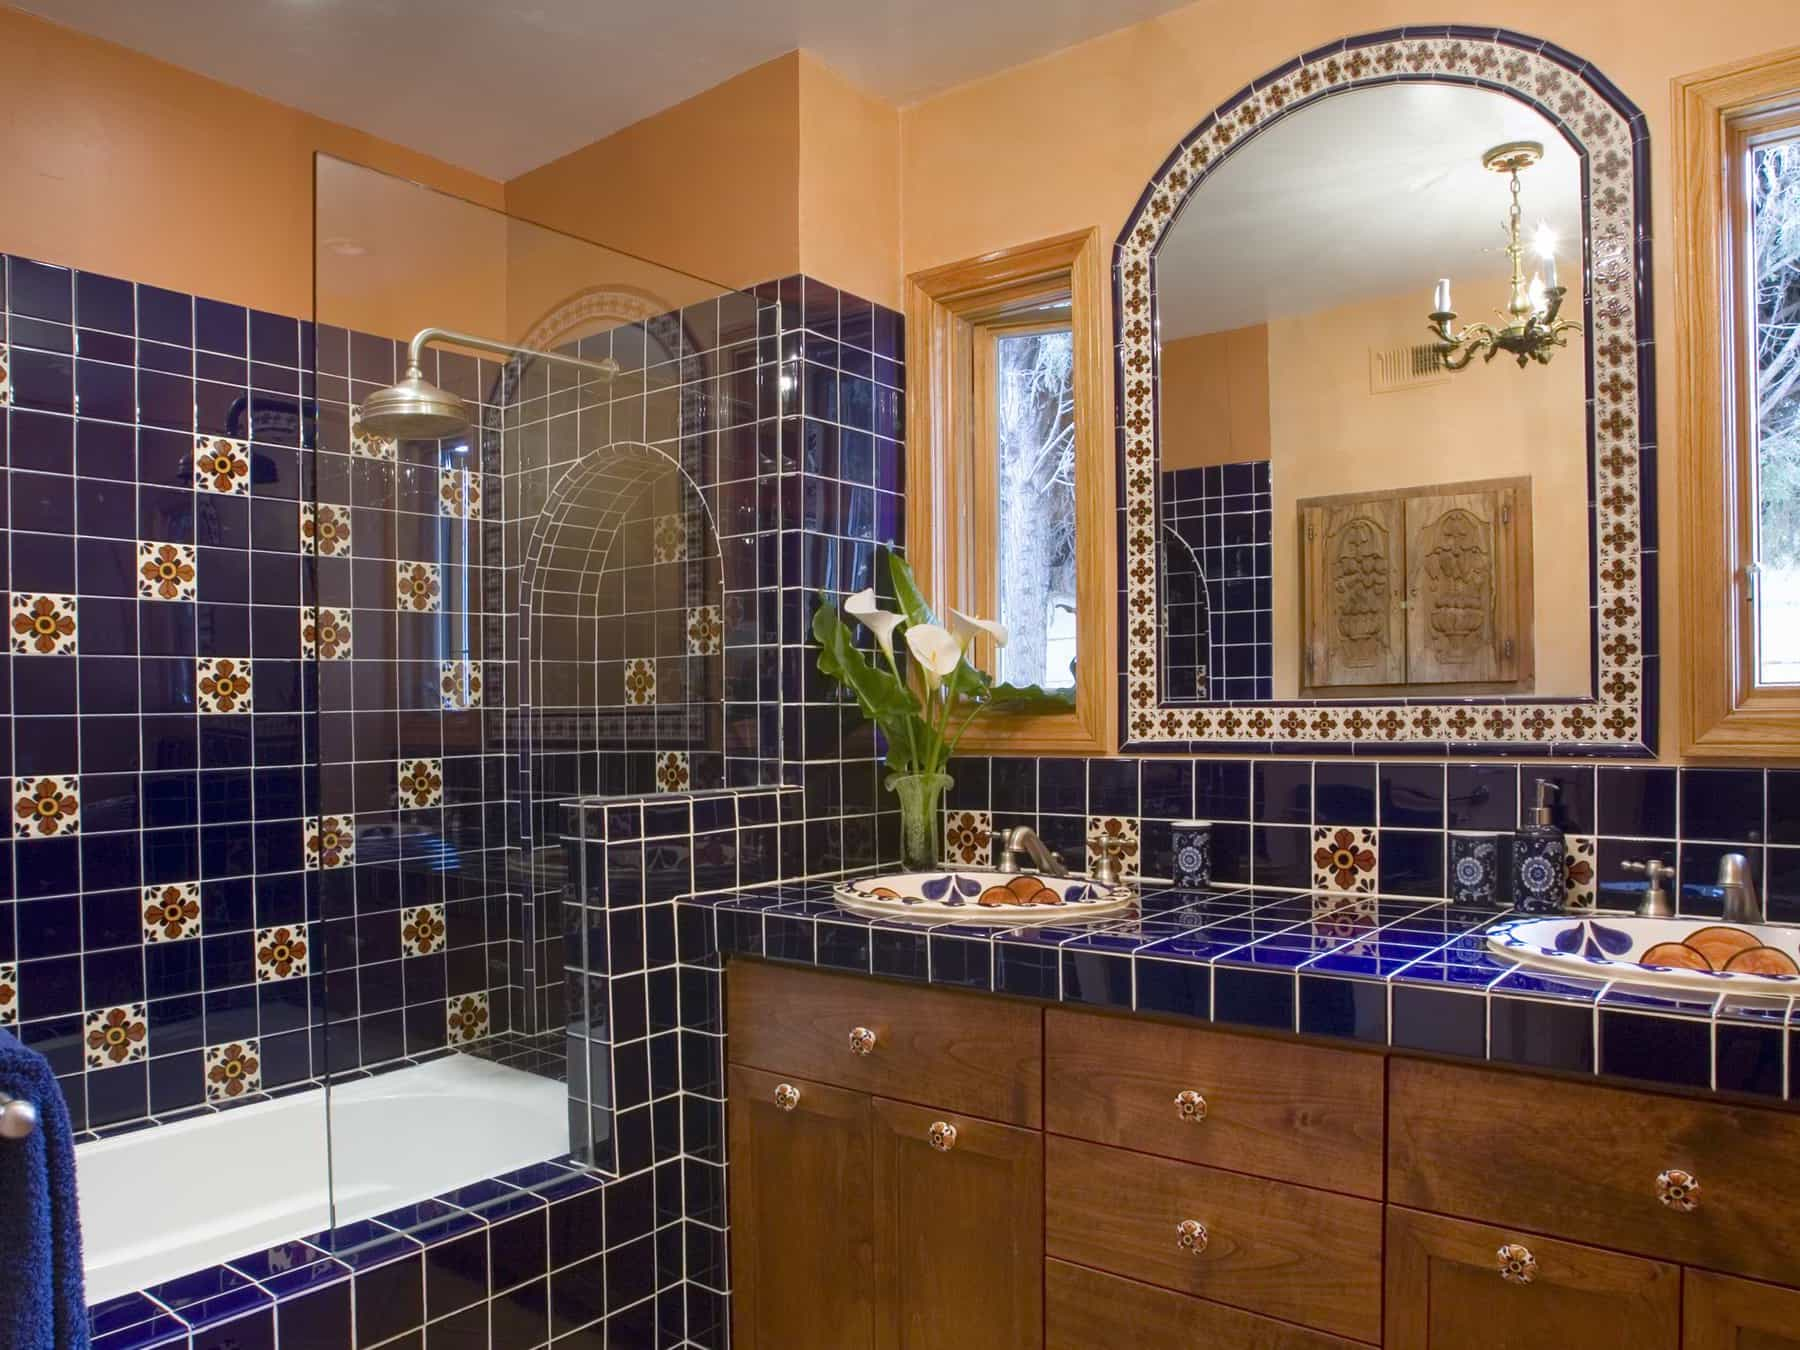 10 Mexican Bathroom Design Ideas 20000 Bathroom Ideas